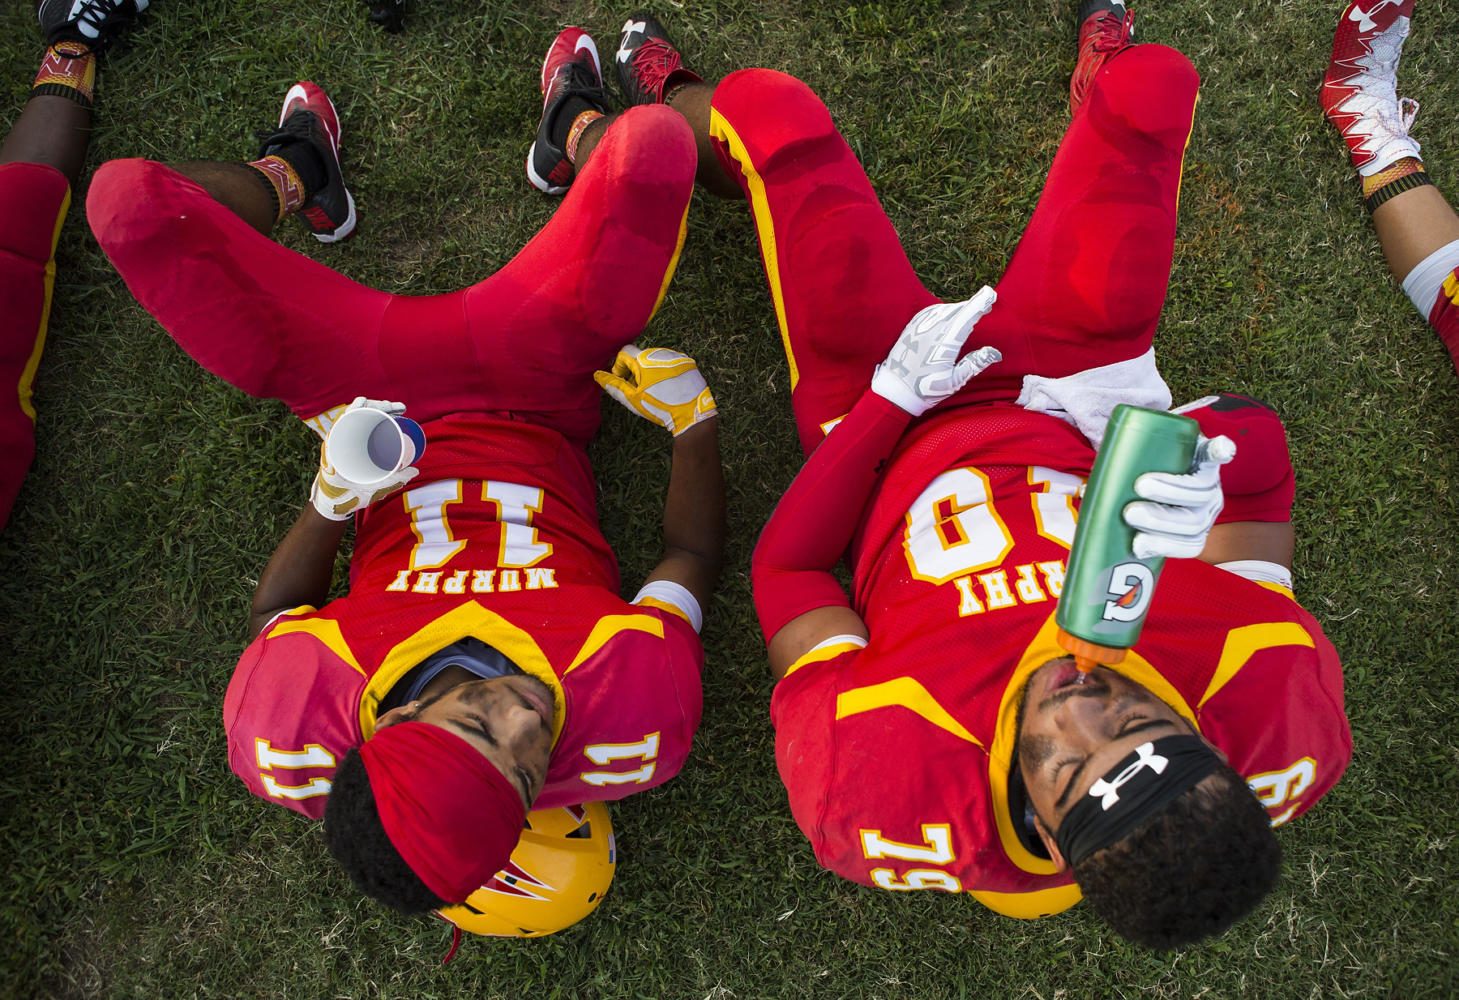 Murphysboro quarterback Gavin Topp, left, and outside linebacker Mo Valliant rest prior to kickoff of the 100th meeting between the Murphysboro Red Devils and the Carbondale Terriers on Friday, Aug. 25, 2017, at